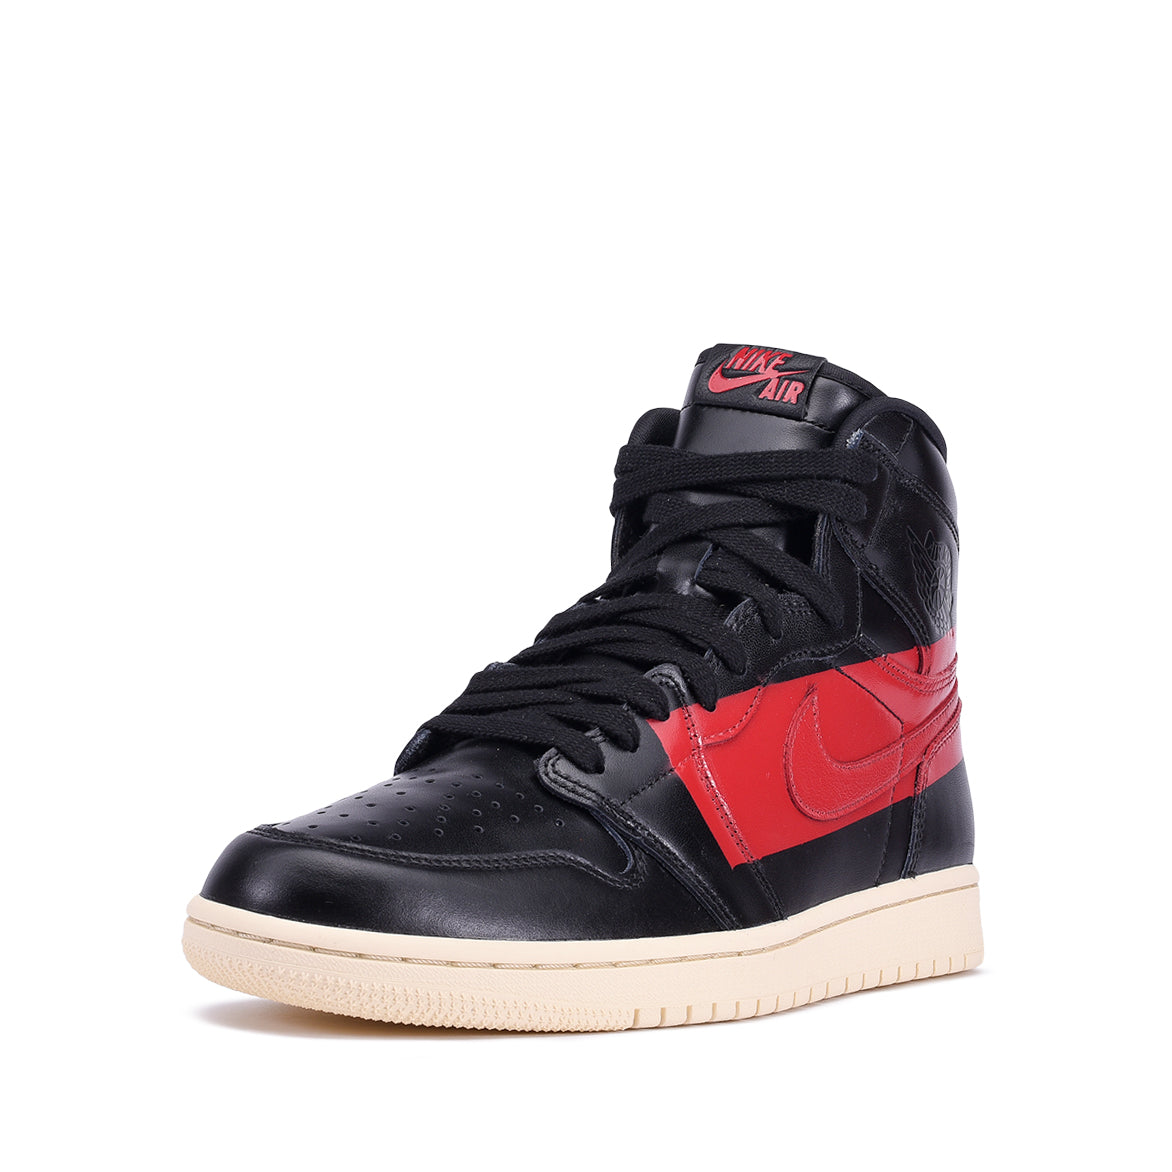 finest selection 562f7 64f21 ... AIR JORDAN 1 HIGH OG DEFIANT